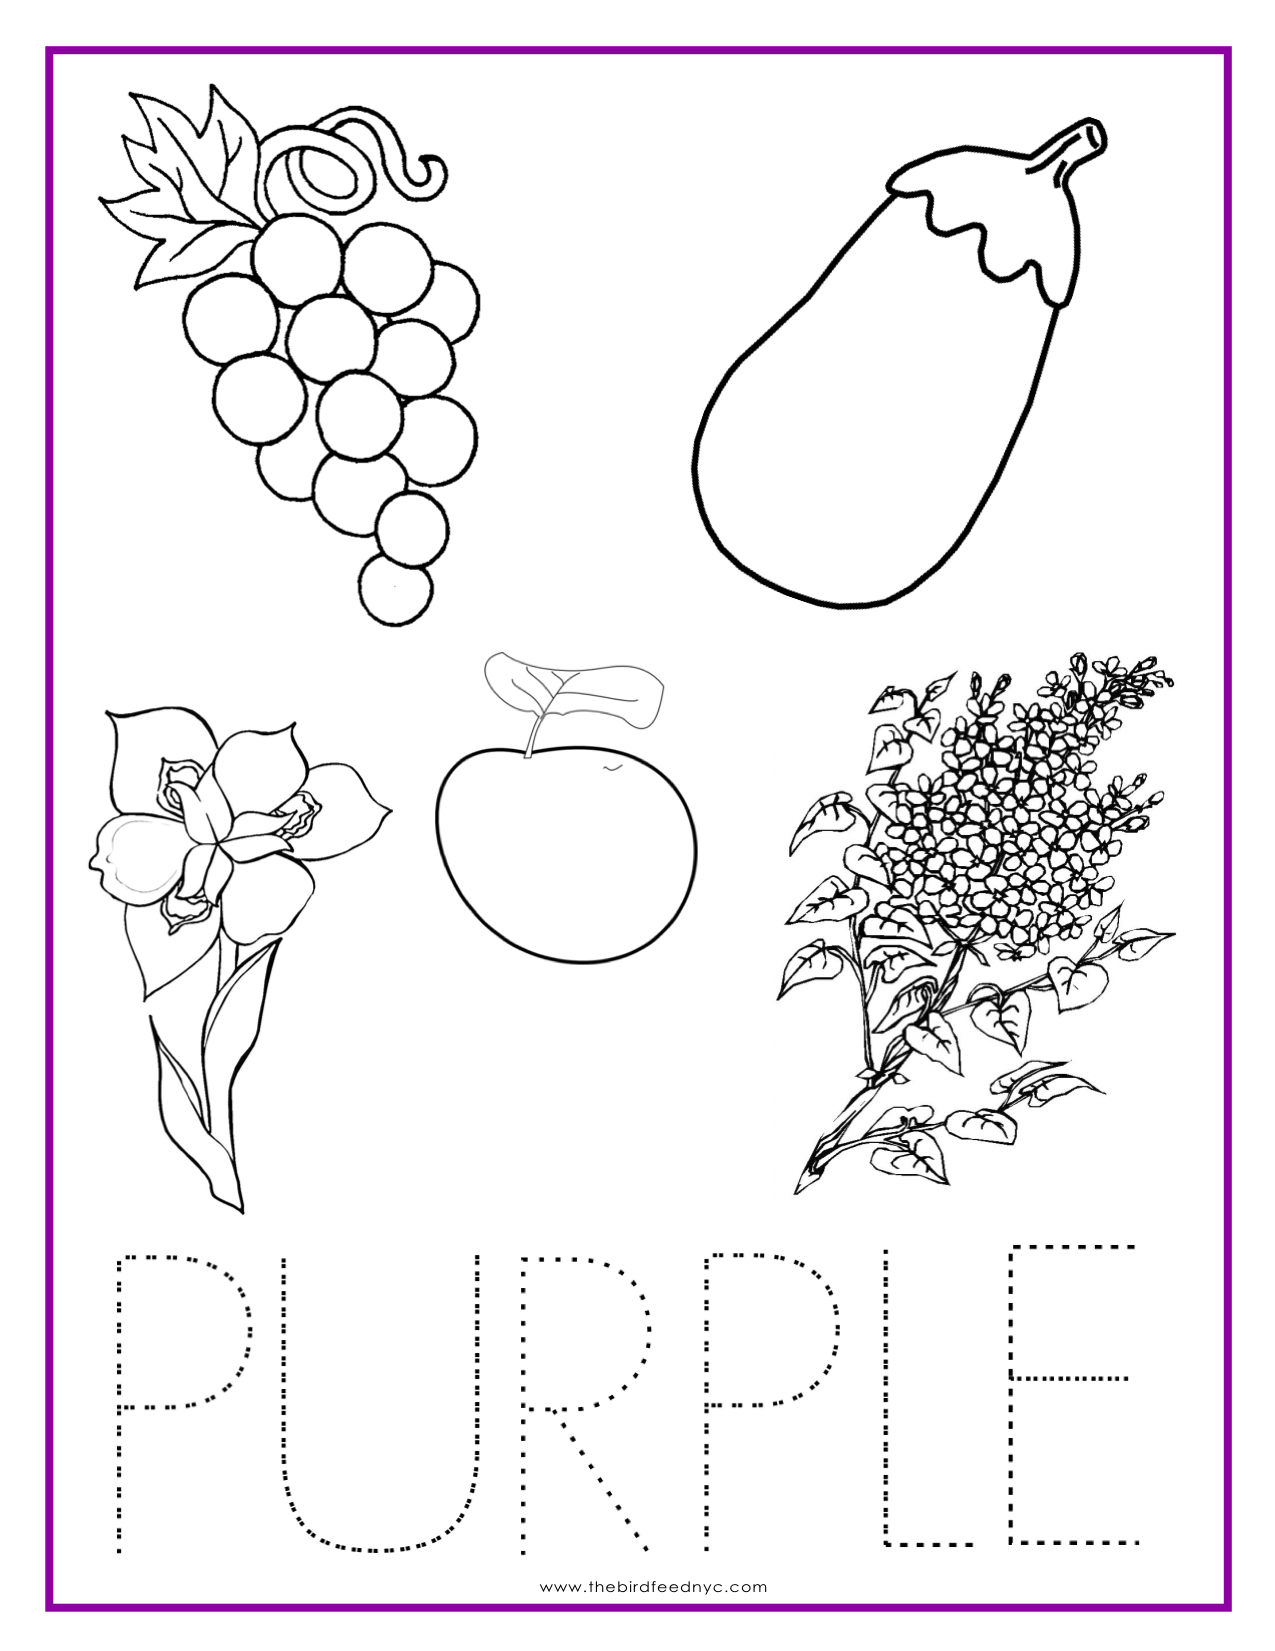 activity coloring pages - printable coloring sheets